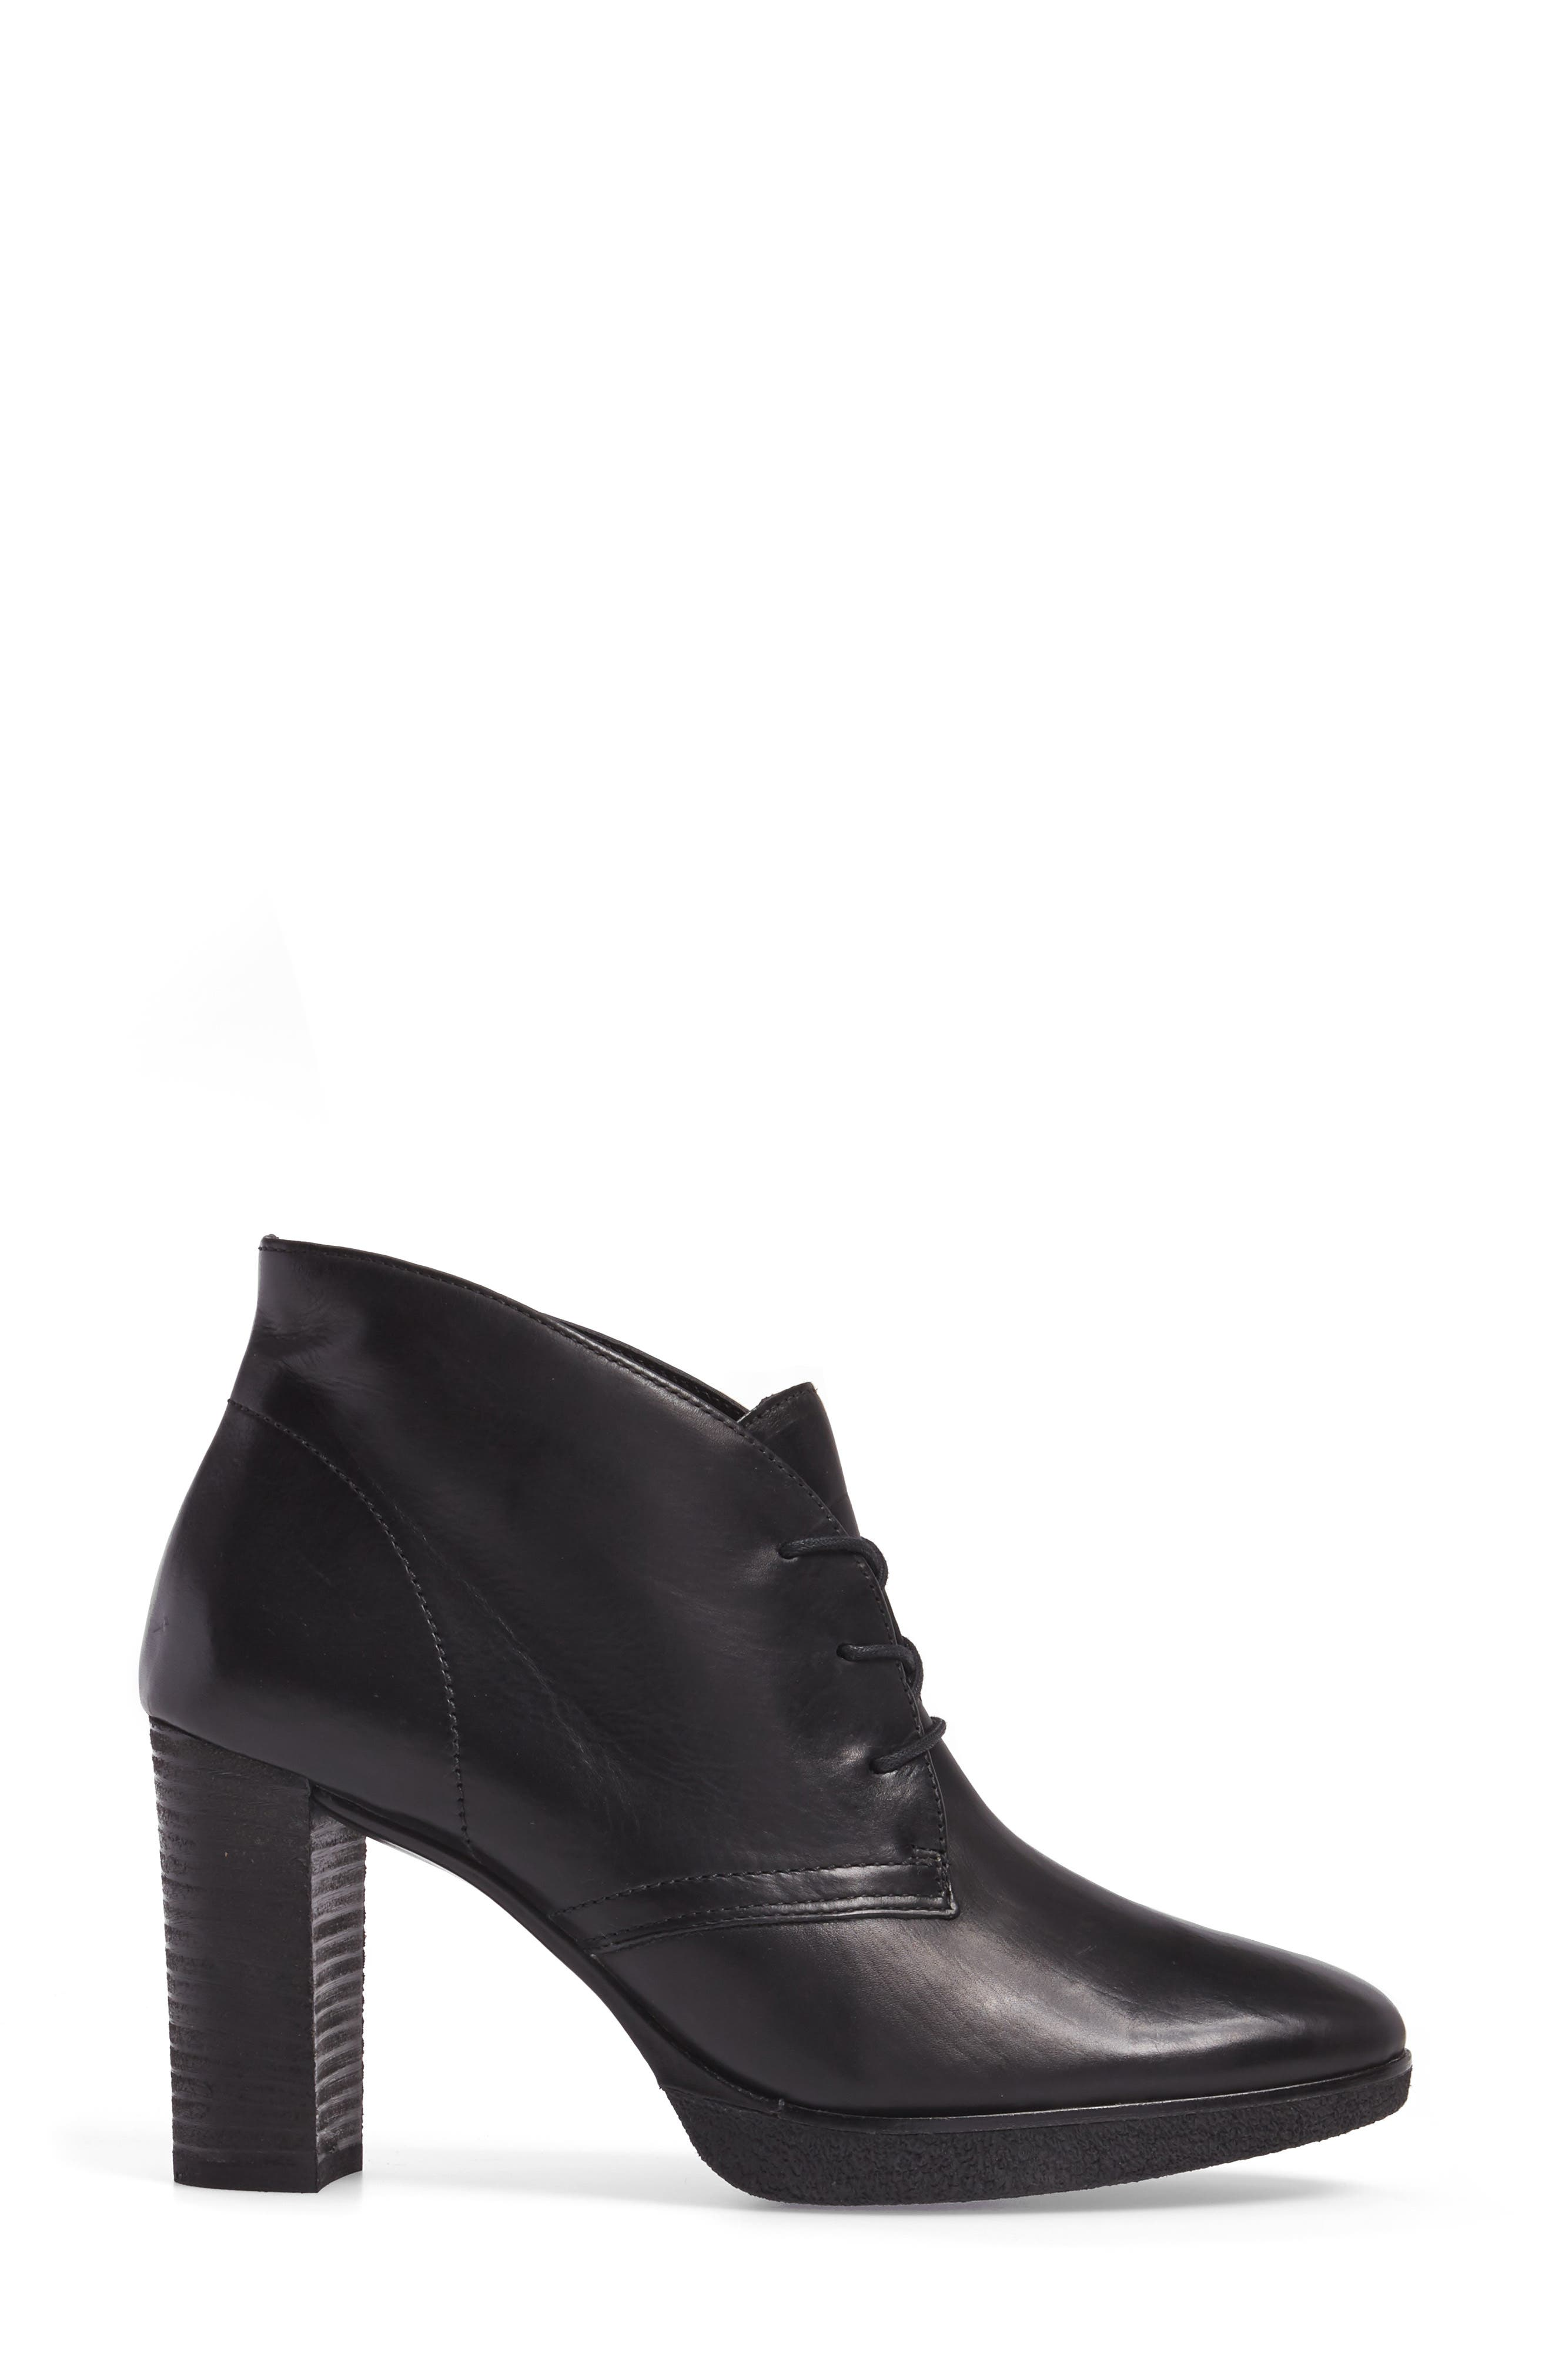 Ophelia Lace-Up Bootie,                             Alternate thumbnail 3, color,                             Black Leather